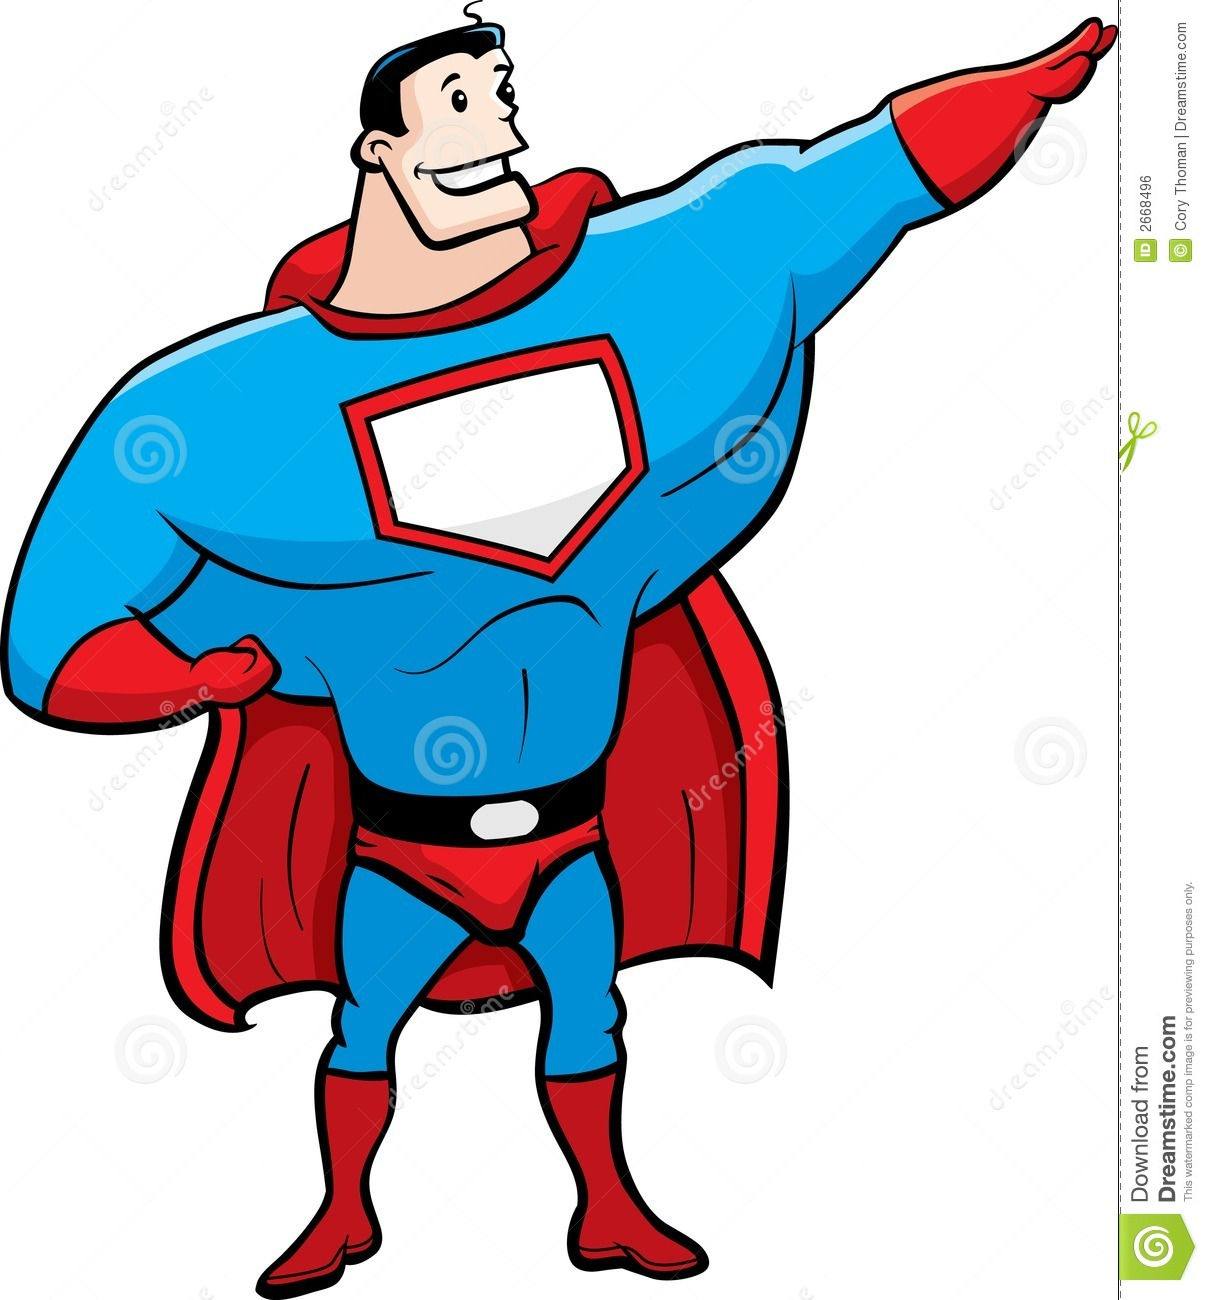 Superhero School Clipart - Clipart Kid